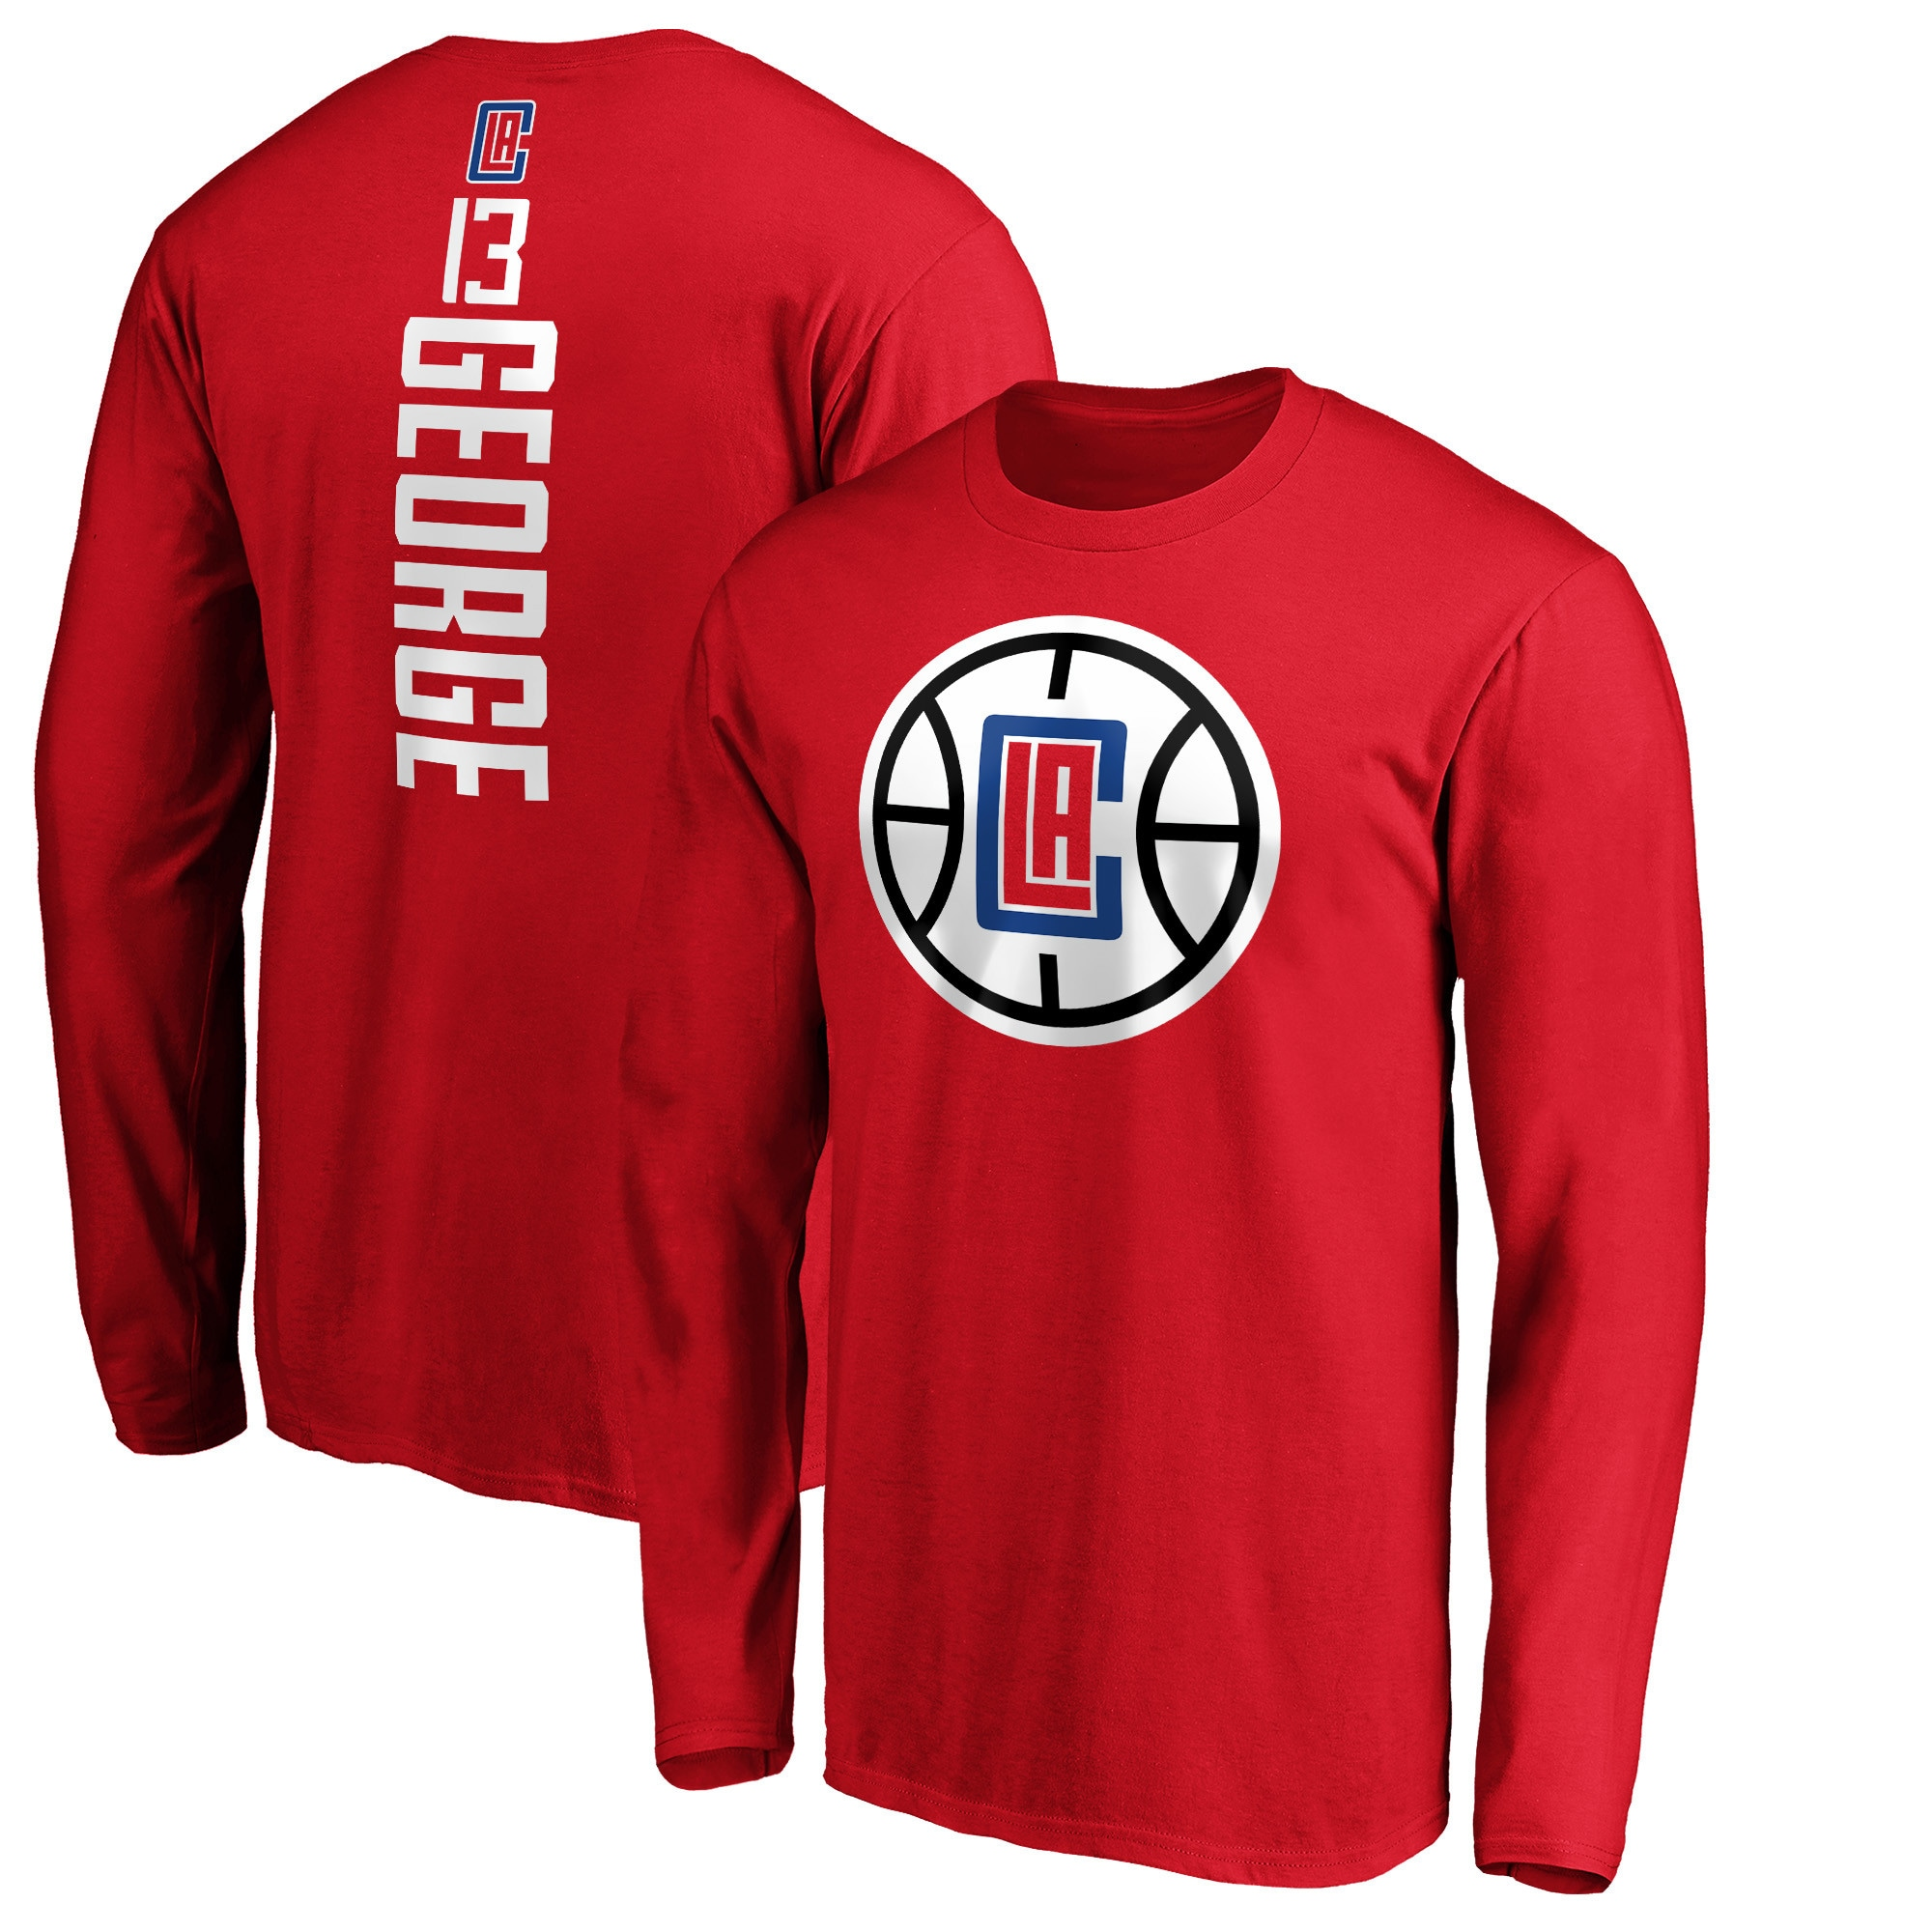 Paul George LA Clippers Fanatics Branded Team Playmaker Name & Number Long Sleeve T-Shirt - Red